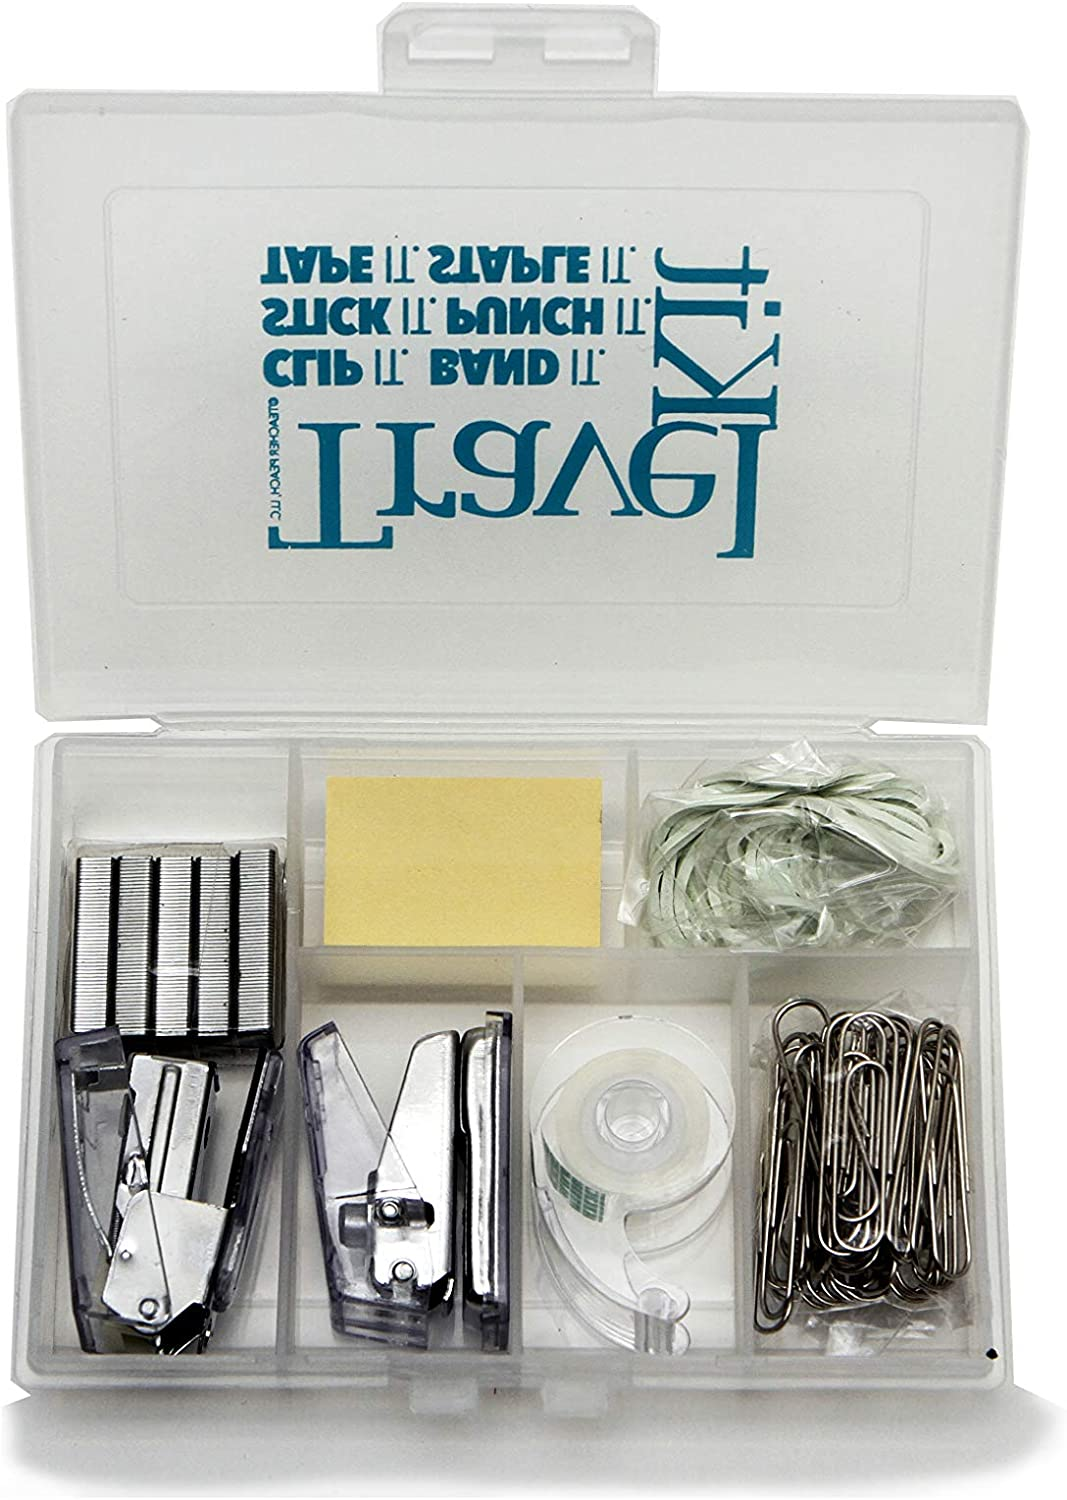 Mini Office Supplies Novelty Travel Kit Gift Set